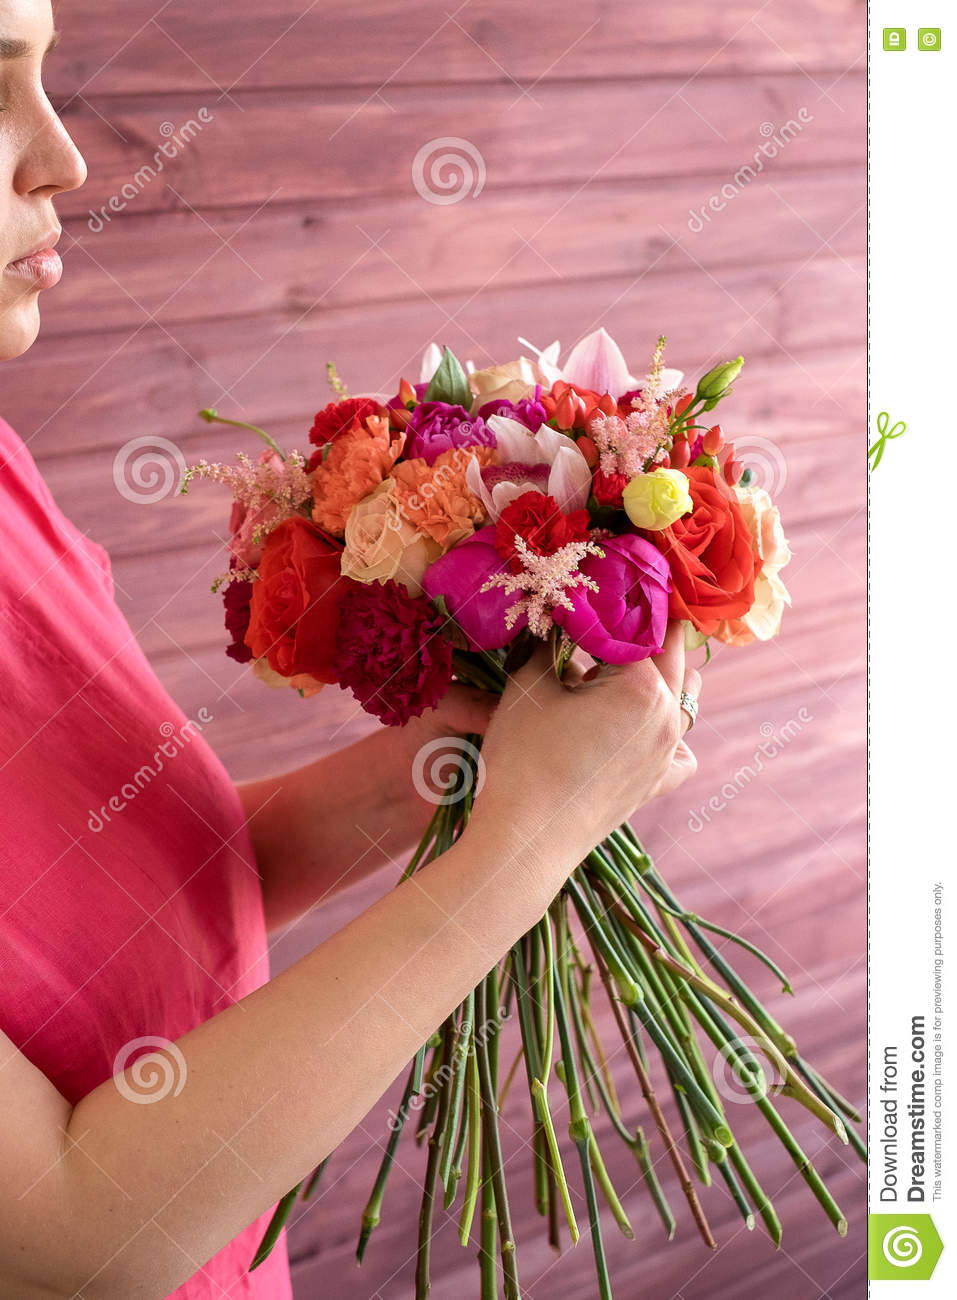 Girl Florist Making A Wedding Bouquet Stock Photo - Image of green ...